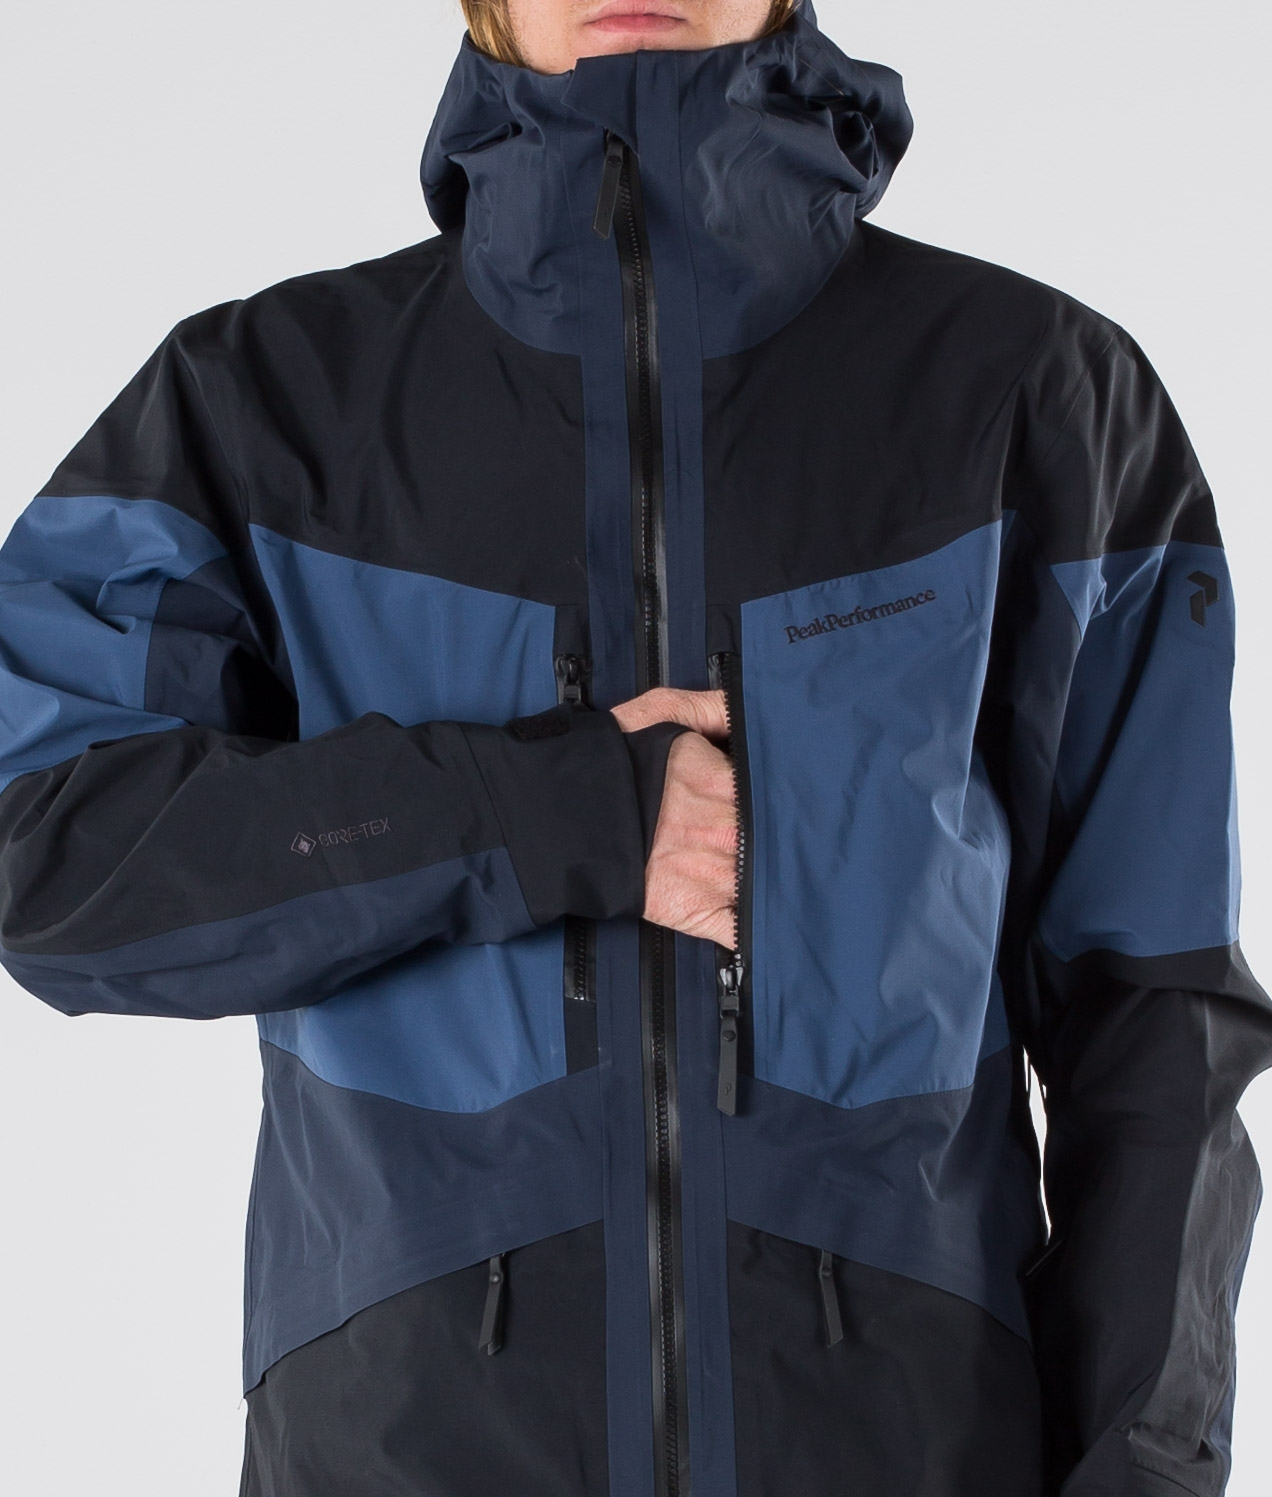 Giacca sci Peak Performance Gore Tex Gravity Uomo